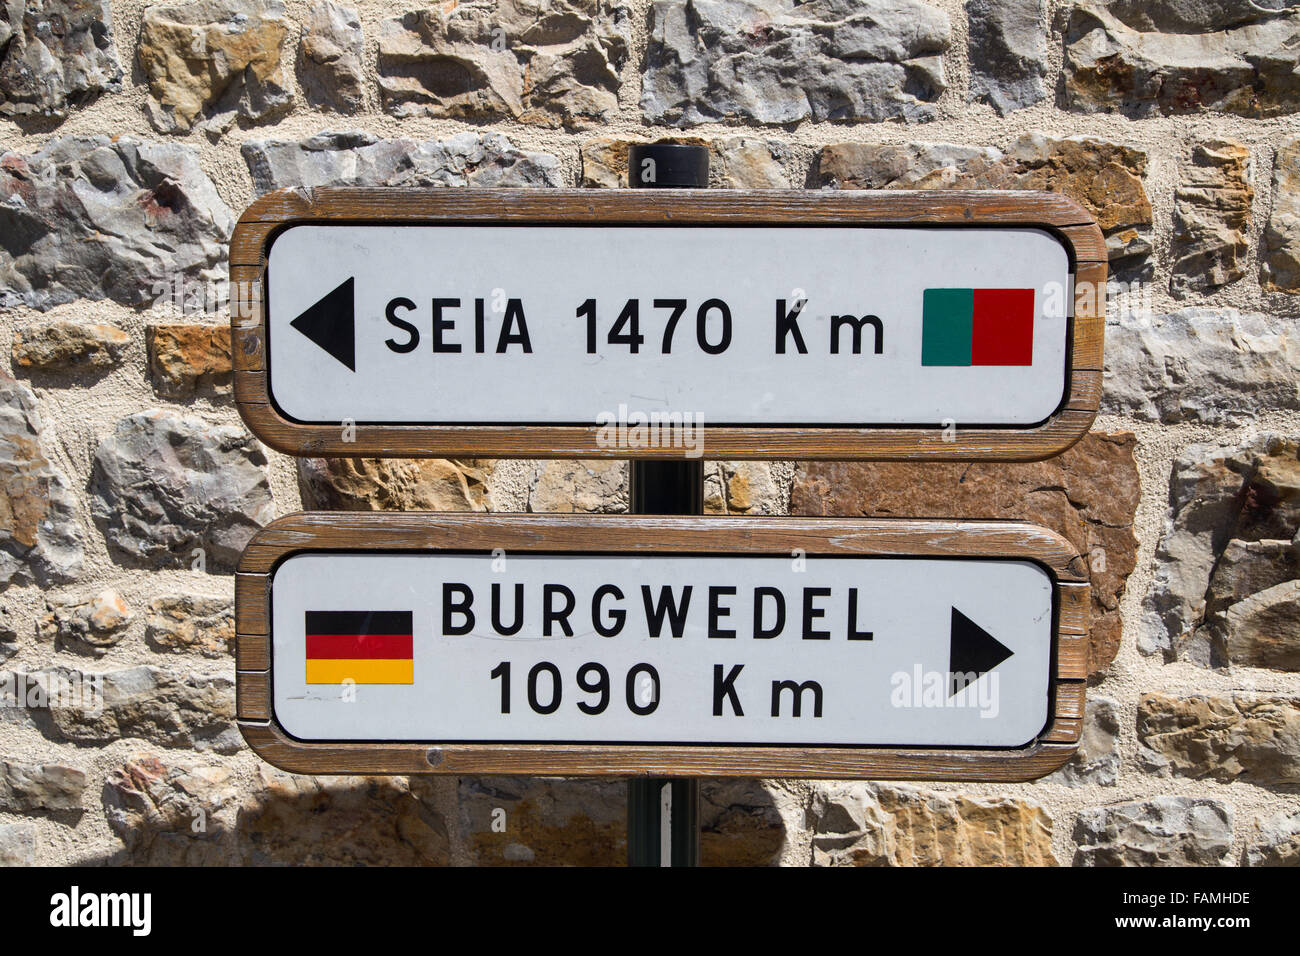 A street sign in Domfront medival town pointing distances to Seia and Burgwedel - Stock Image